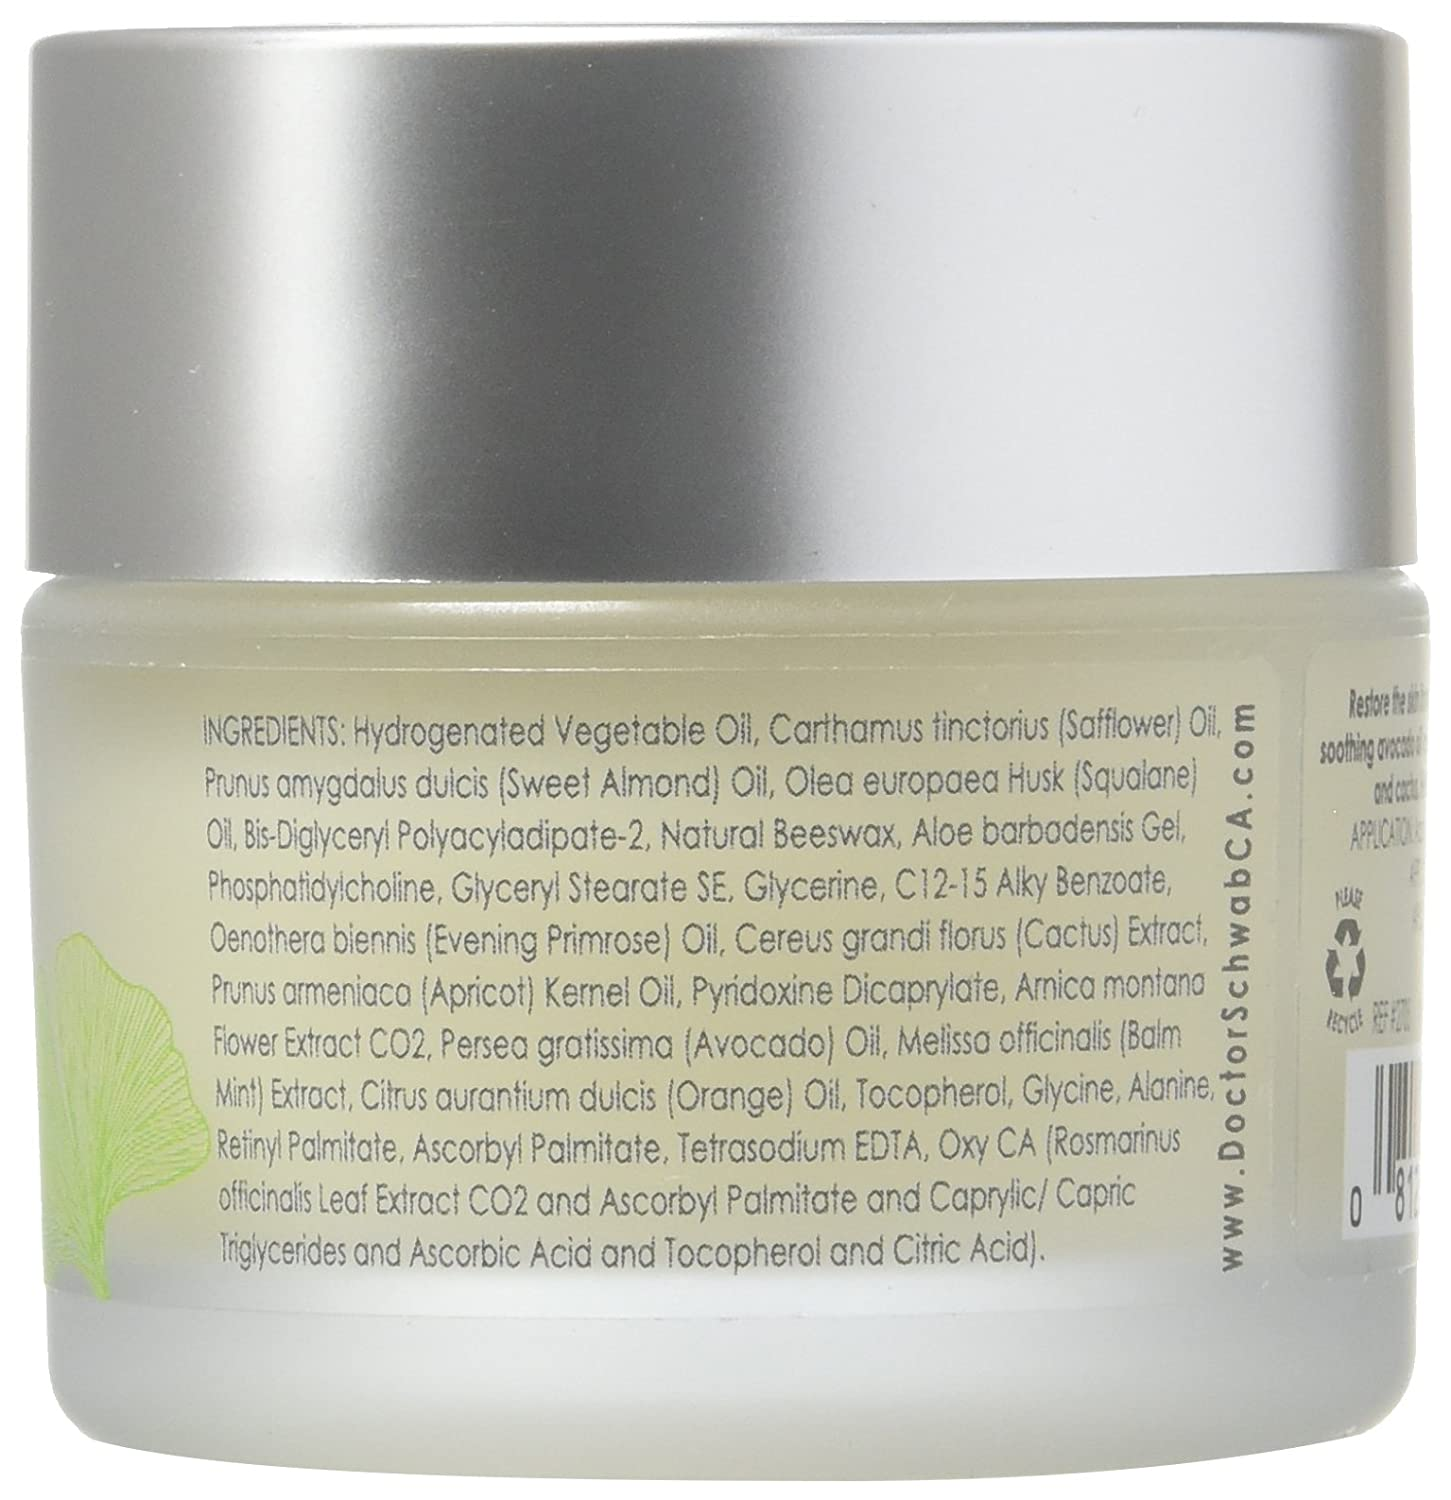 Dr. Schwab Rescue Cream 1.65 oz 50 ml